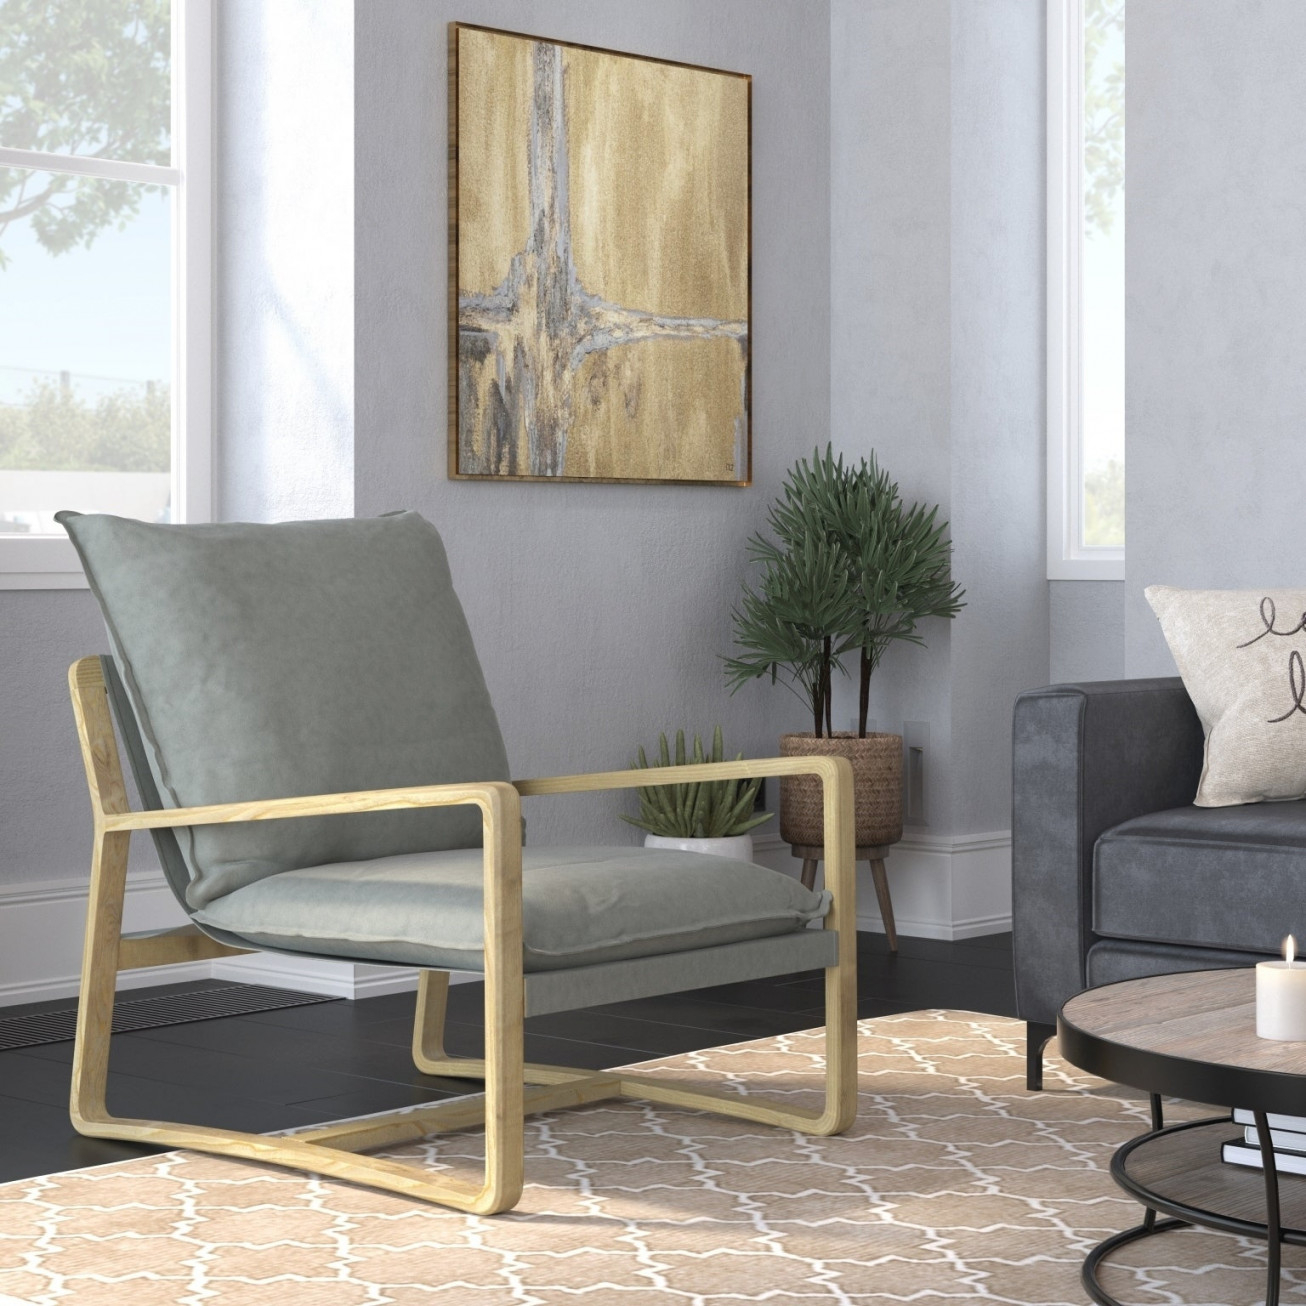 Amarantos Modern Accent Chair Living Room Lounge Chair Sofa pertaining to Modern Chairs For Living Room